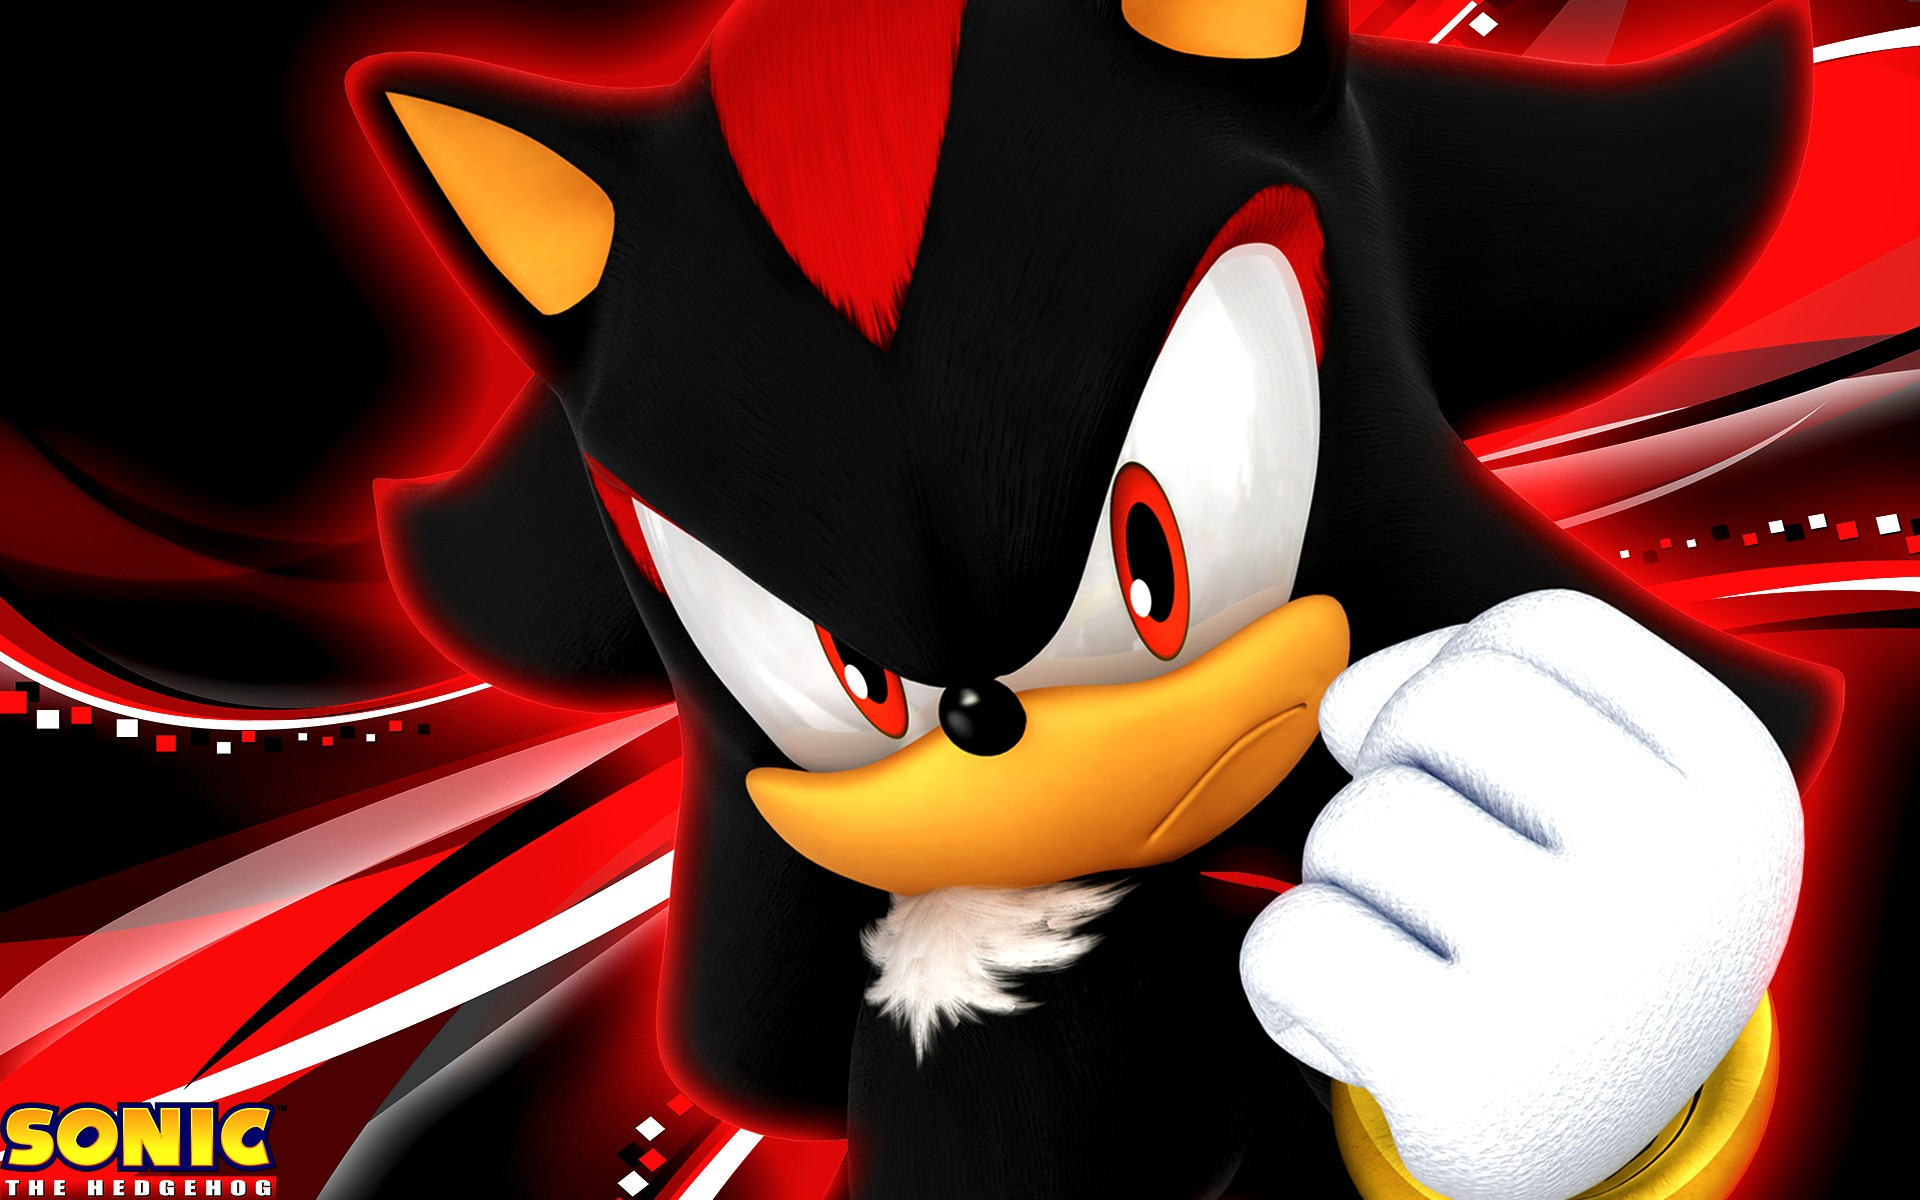 Sonic The Hedgehog Widescreen Background